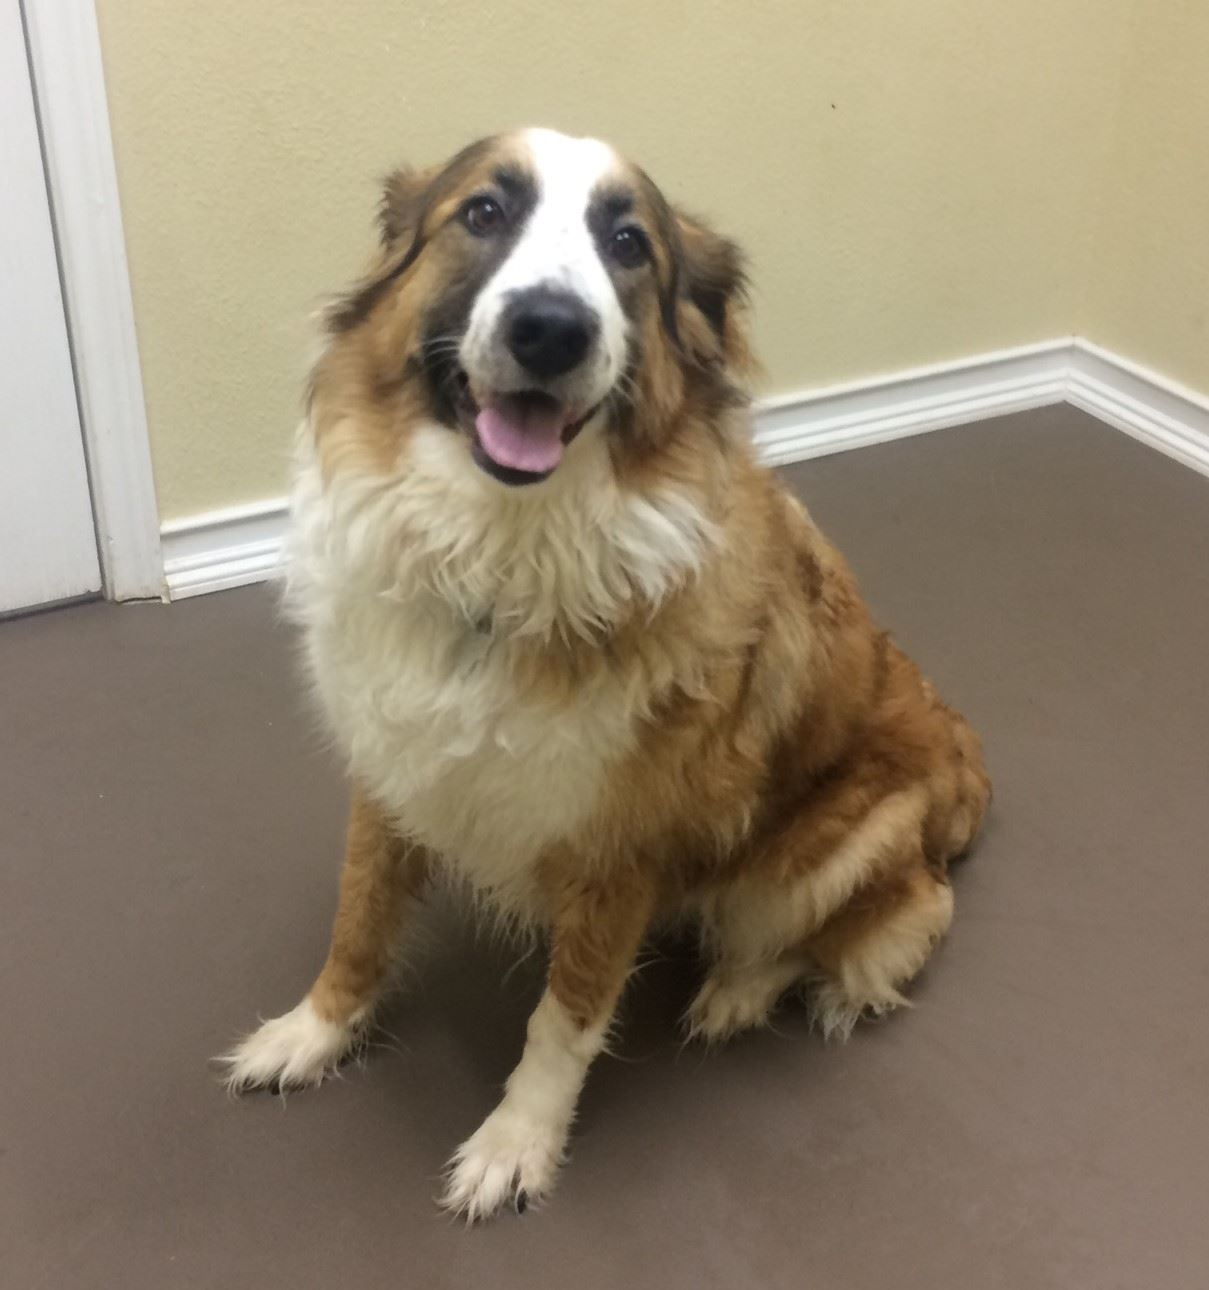 Xena 17-432 large tan and white female border collie/pyrenees mix